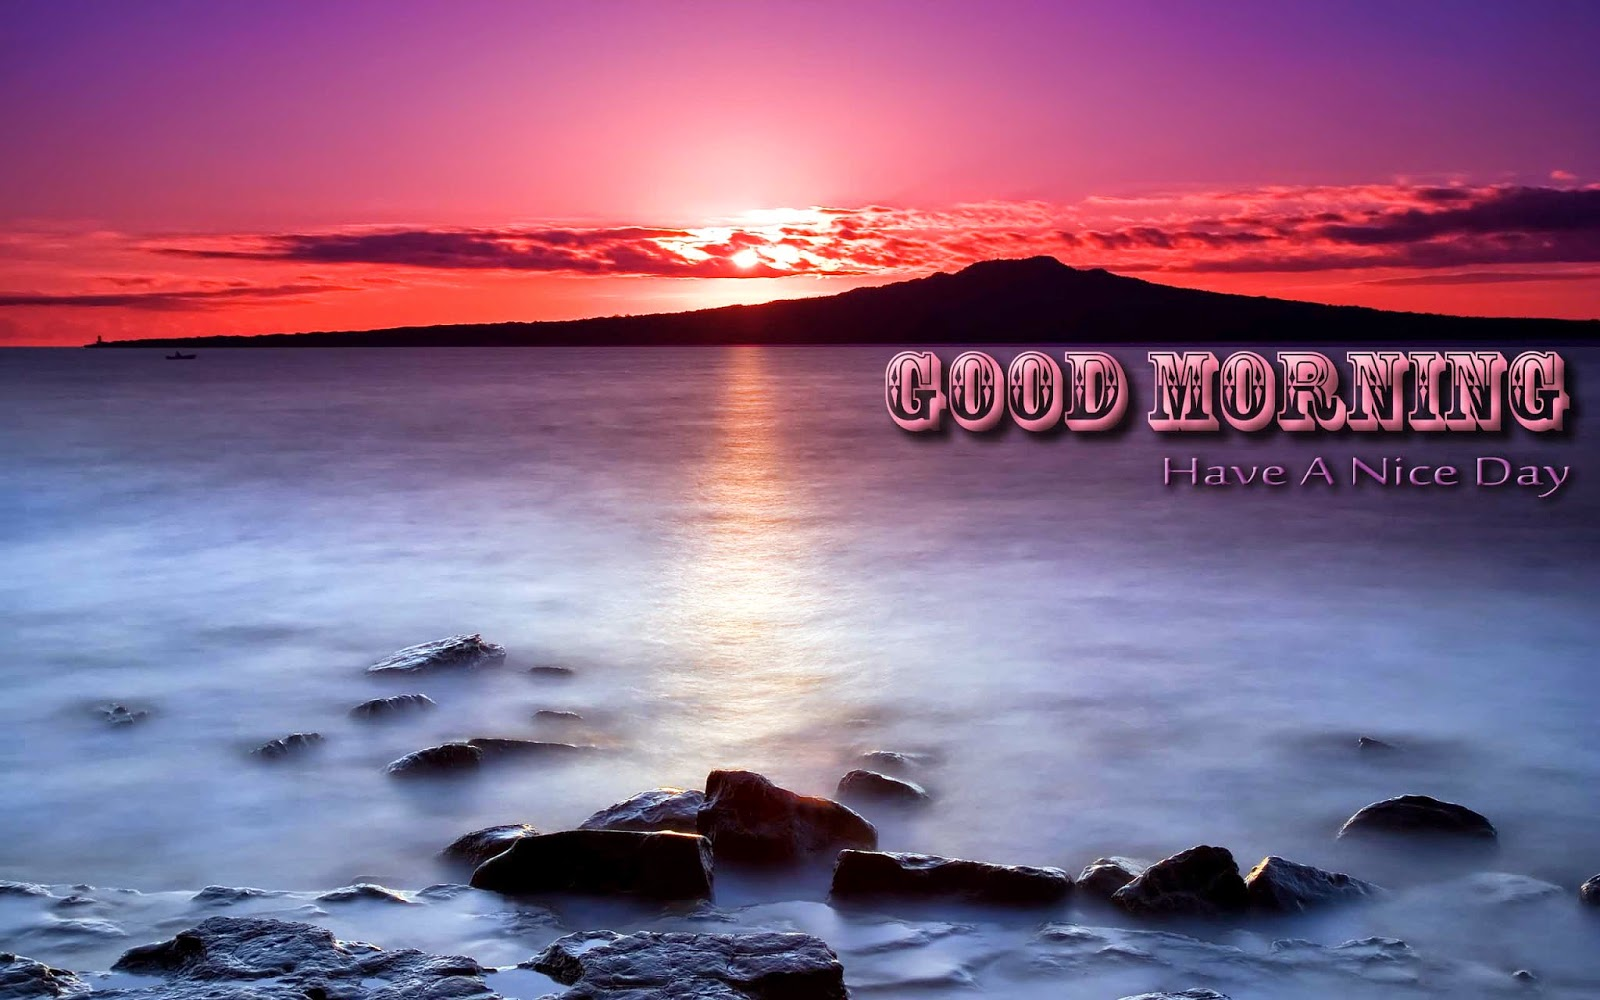 Good morning wishes wallpaper gallery all hd wallpaper 2014 - Good morning full hd ...